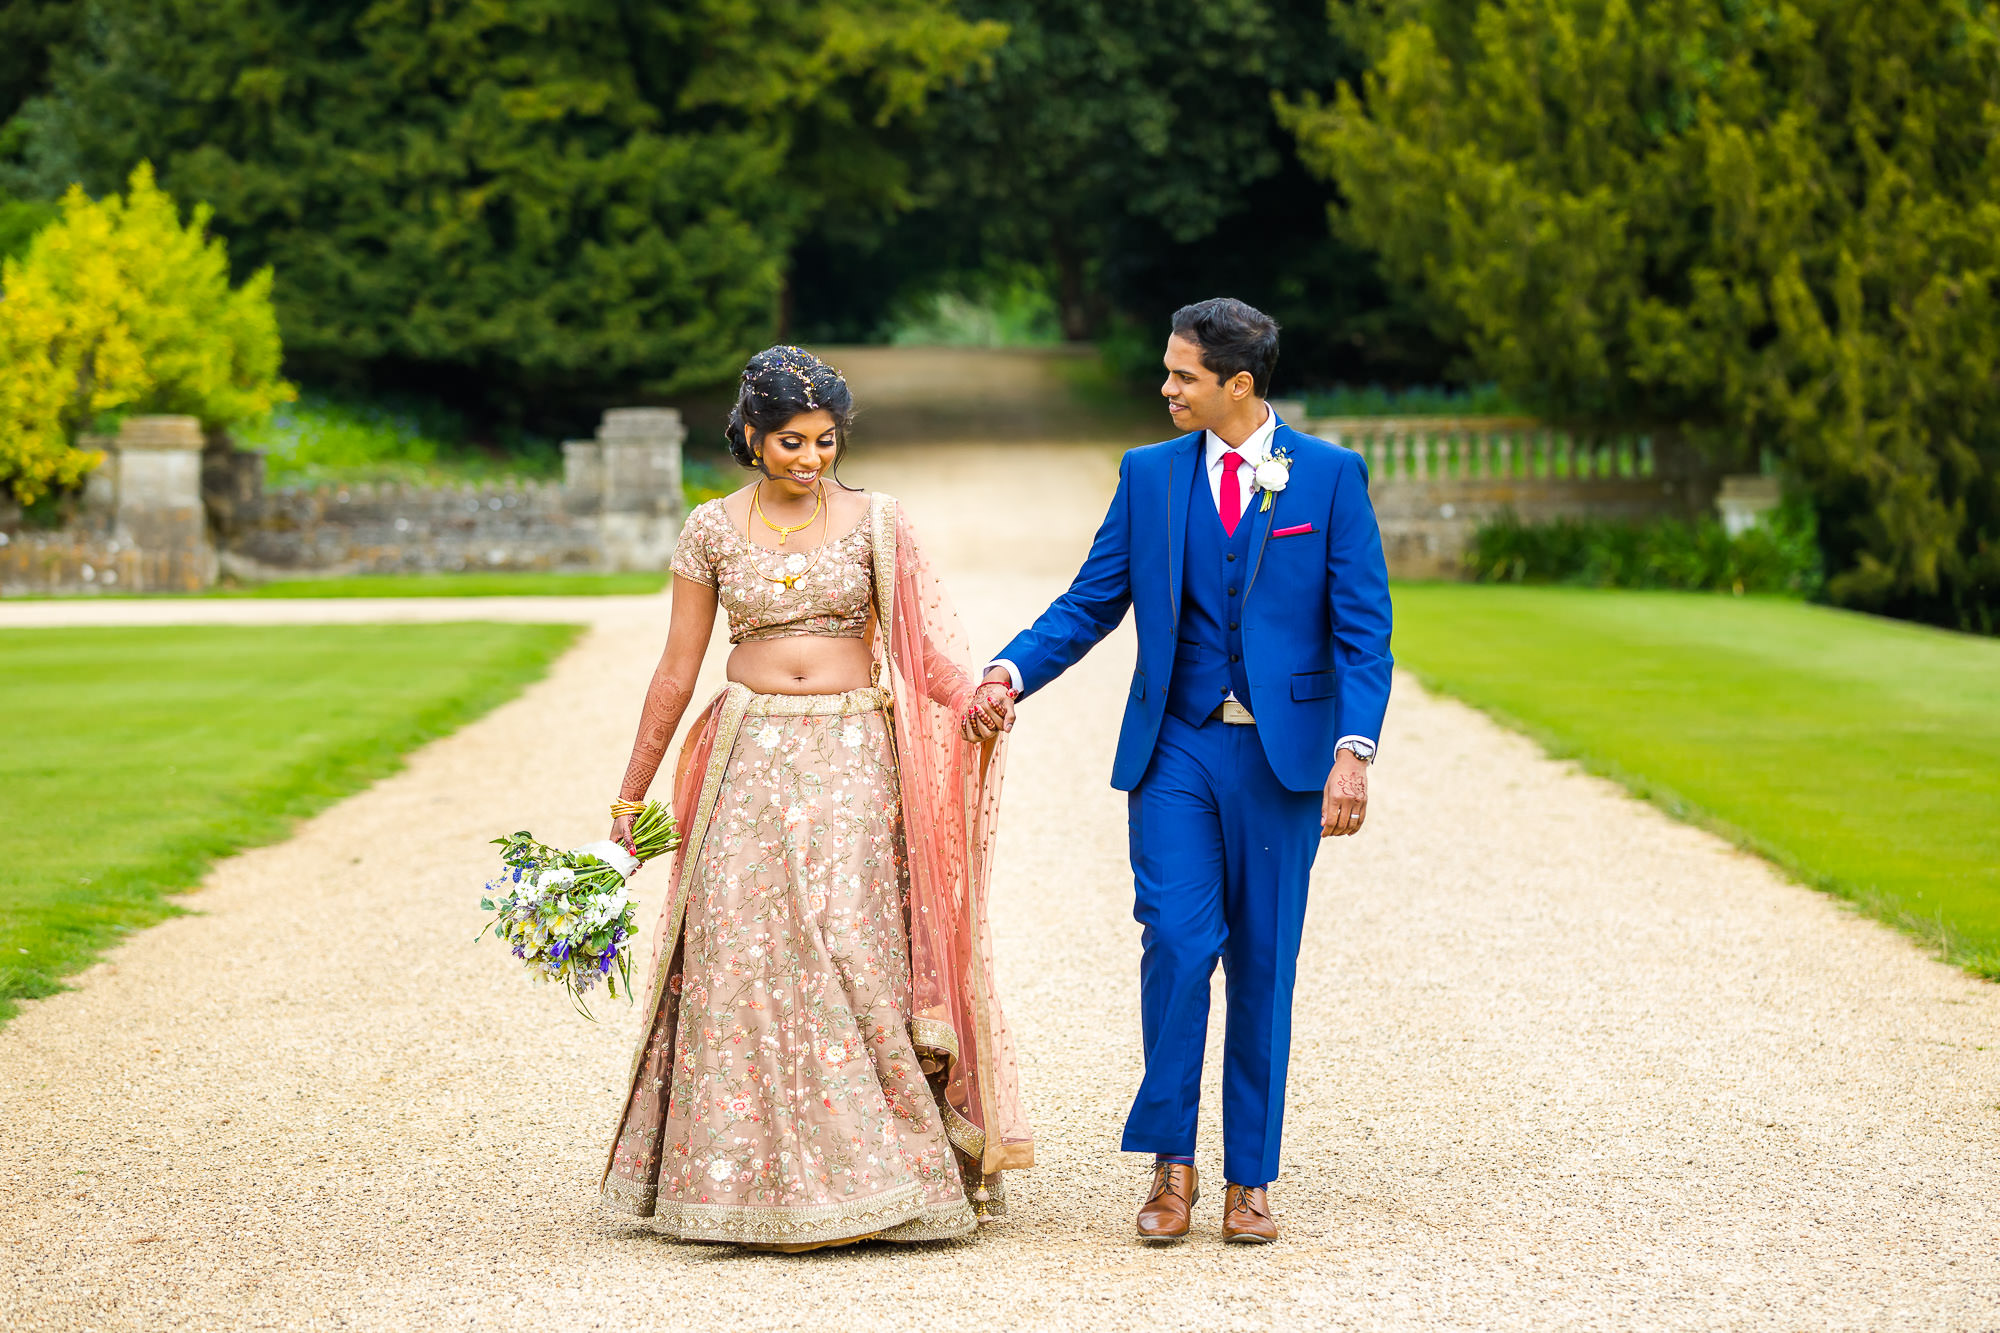 asian-wedding-hindu-tamil-photographer-heythorpe-oxford-0257.jpg